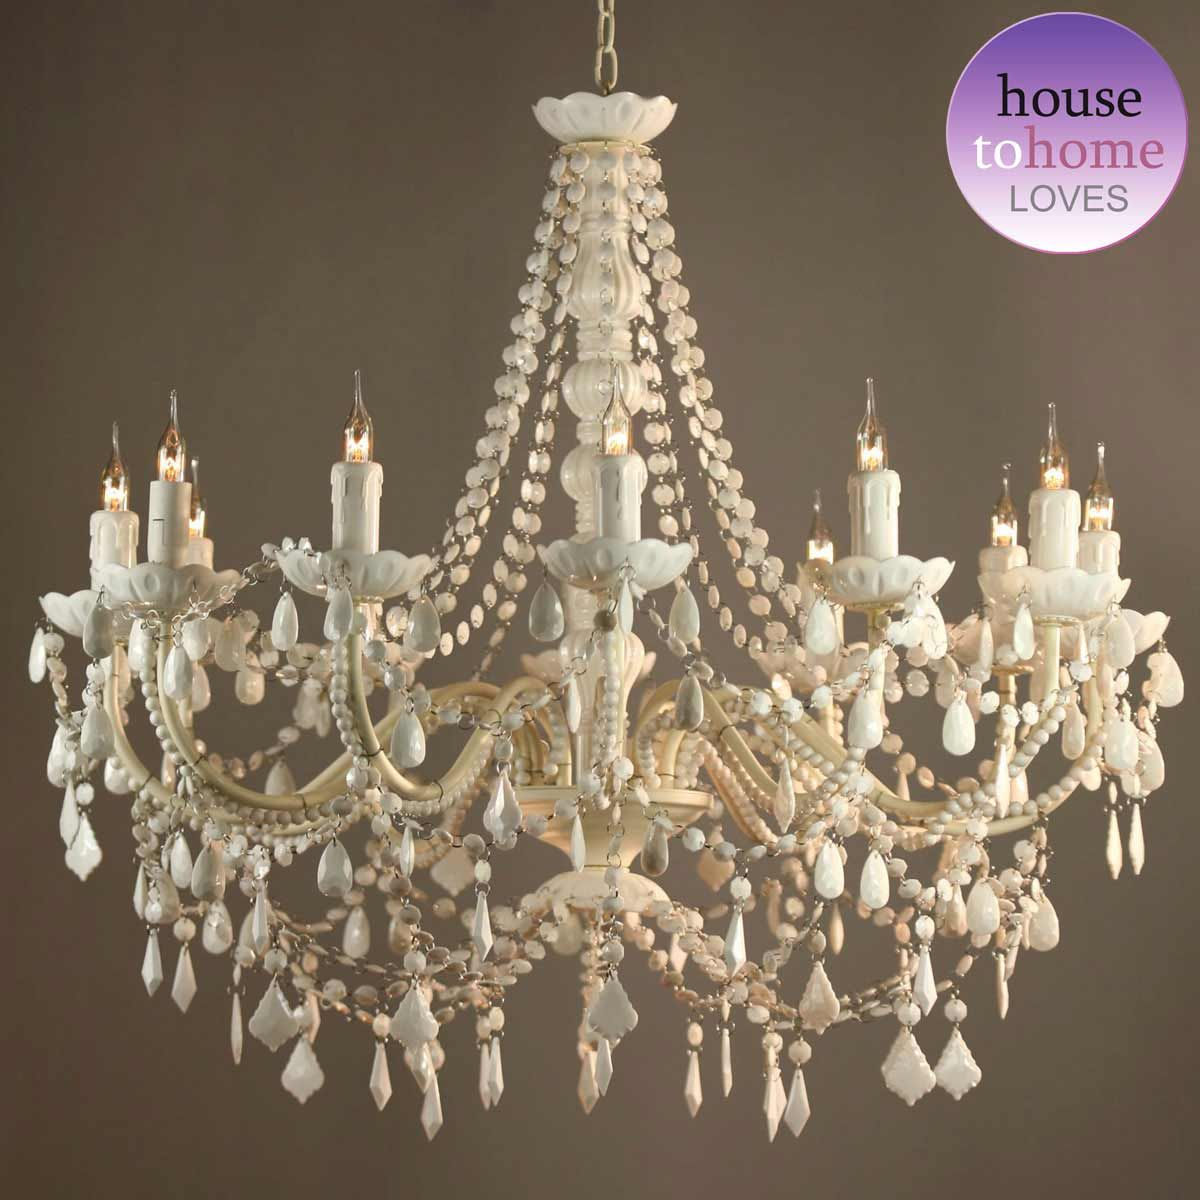 Mimi White 12 Arm Chandelier White Chandelier Chandelier Bedroom Acrylic Chandelier